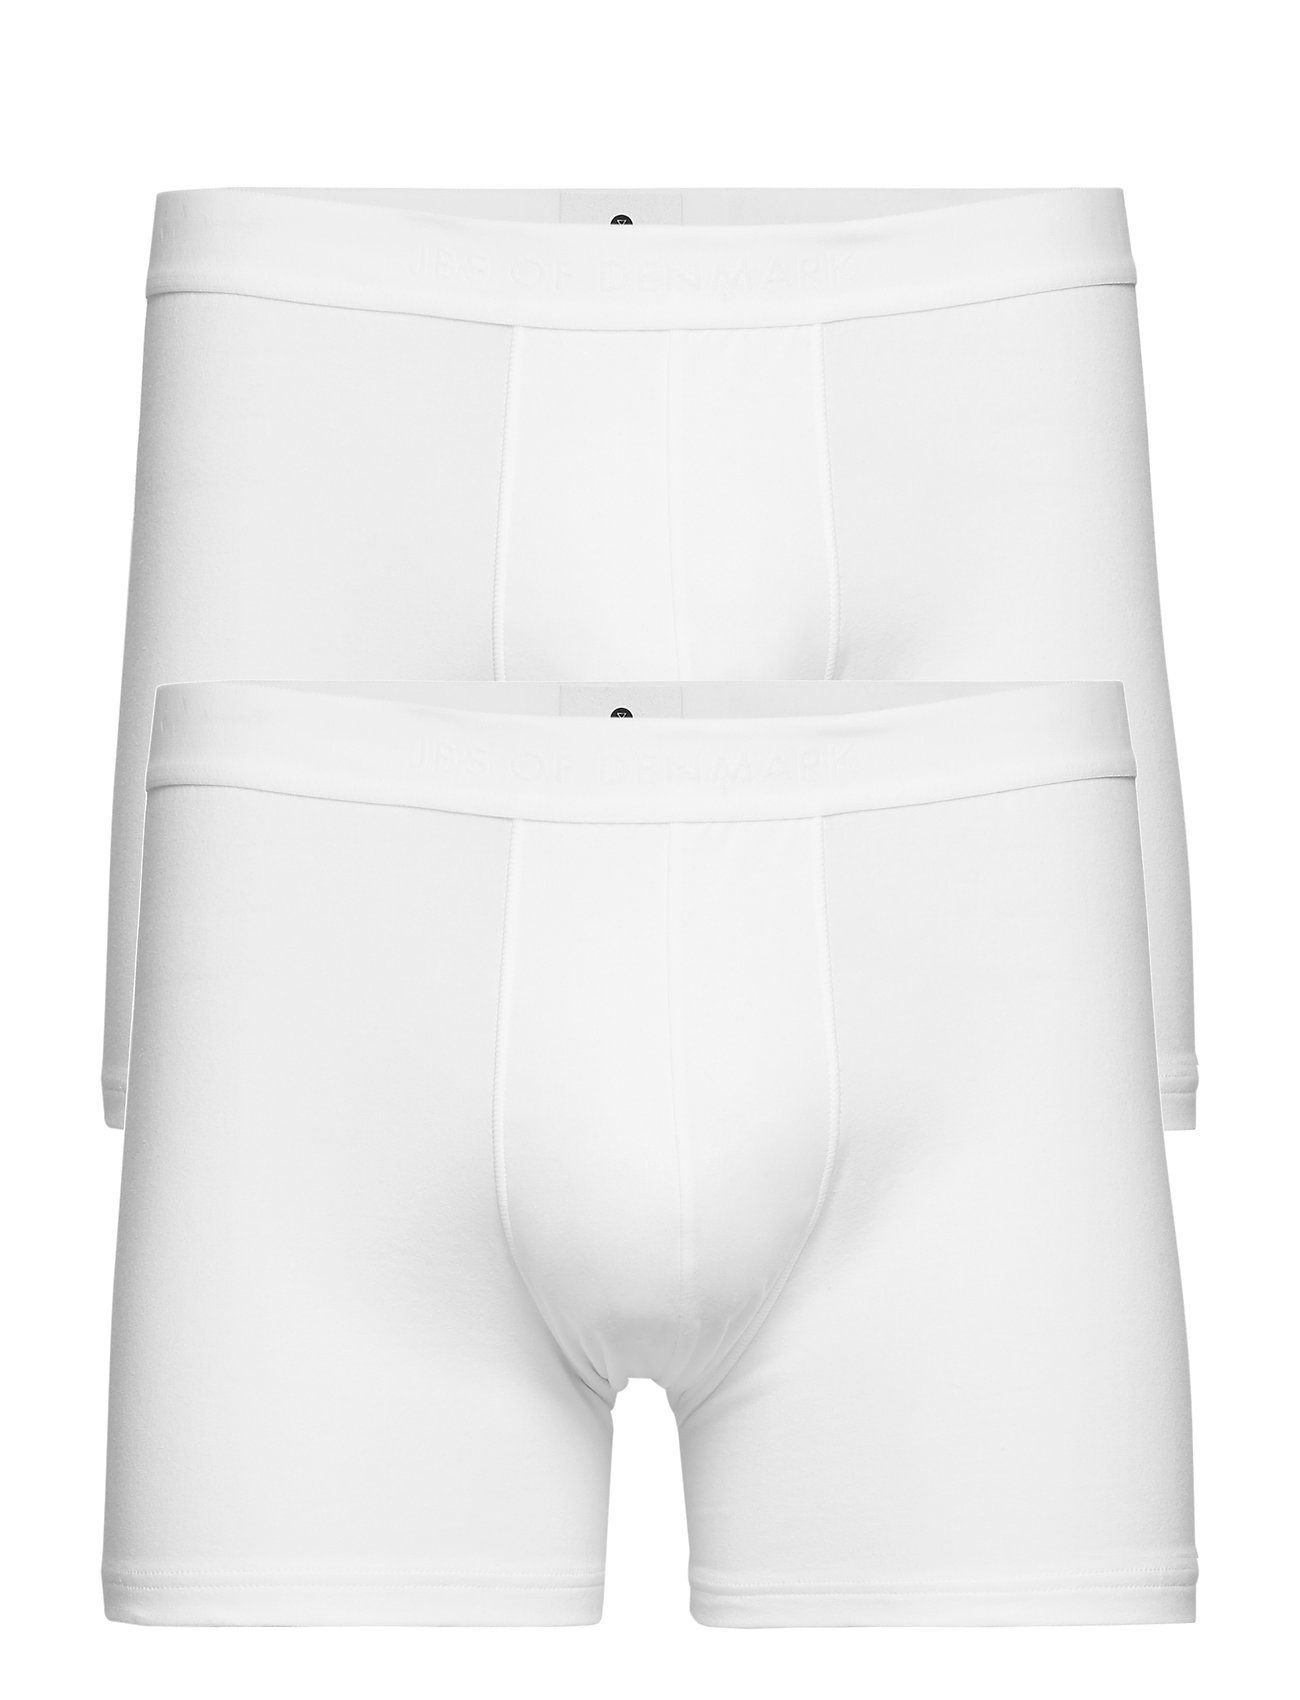 JBS of Denmark JBS of Denmark trunks - WHITE